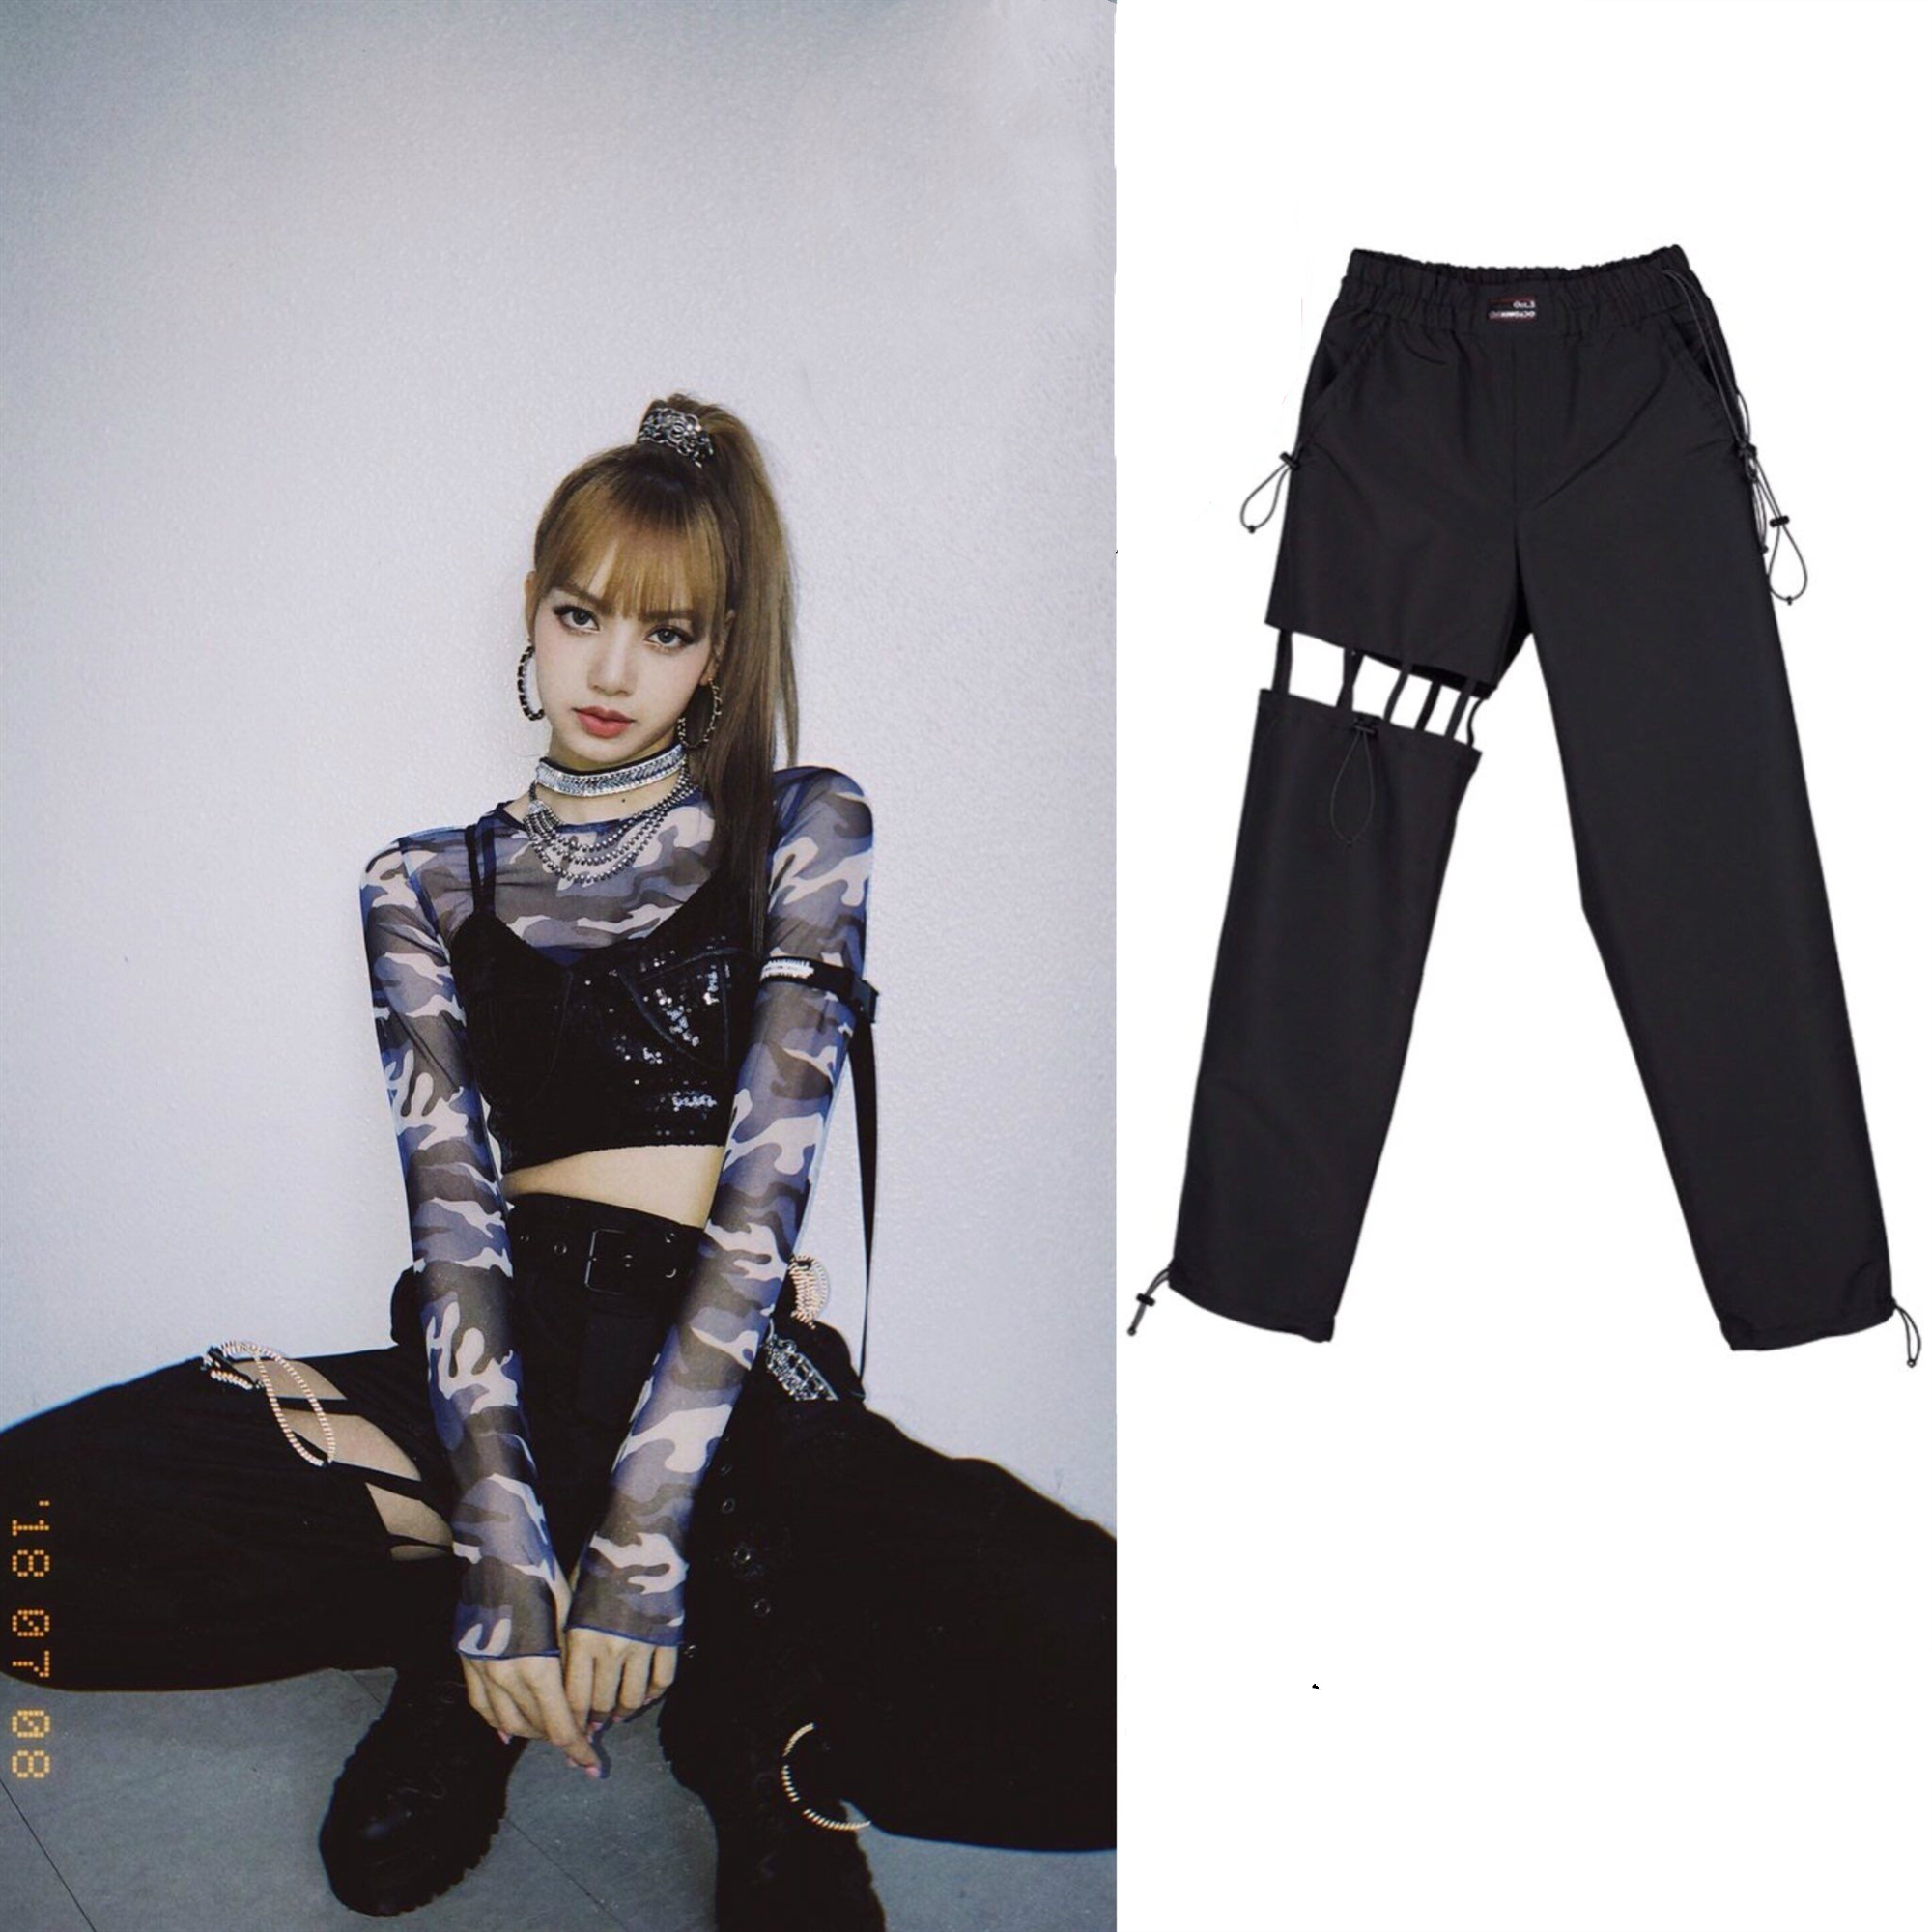 2020 New BLACKPINK LISA The Same High Waist Pants Women Casual Streetwear Summer Korean Trousers Female Fans Sexy Sweatpants